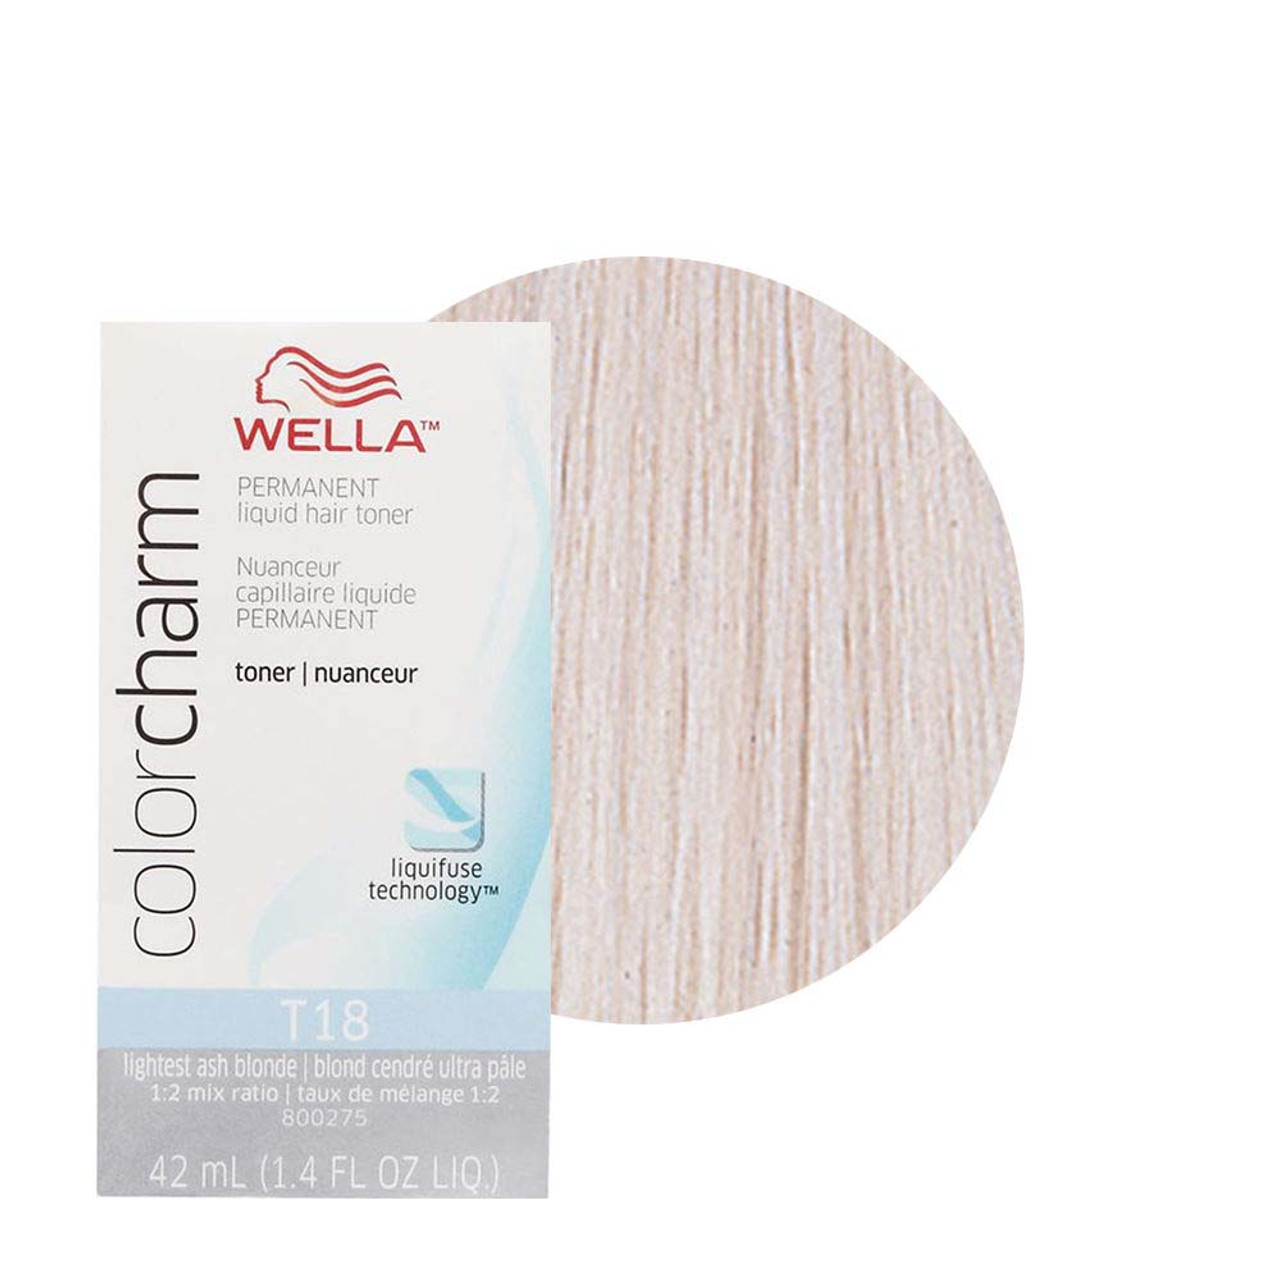 Wella T18 Color Charm 1.4 oz